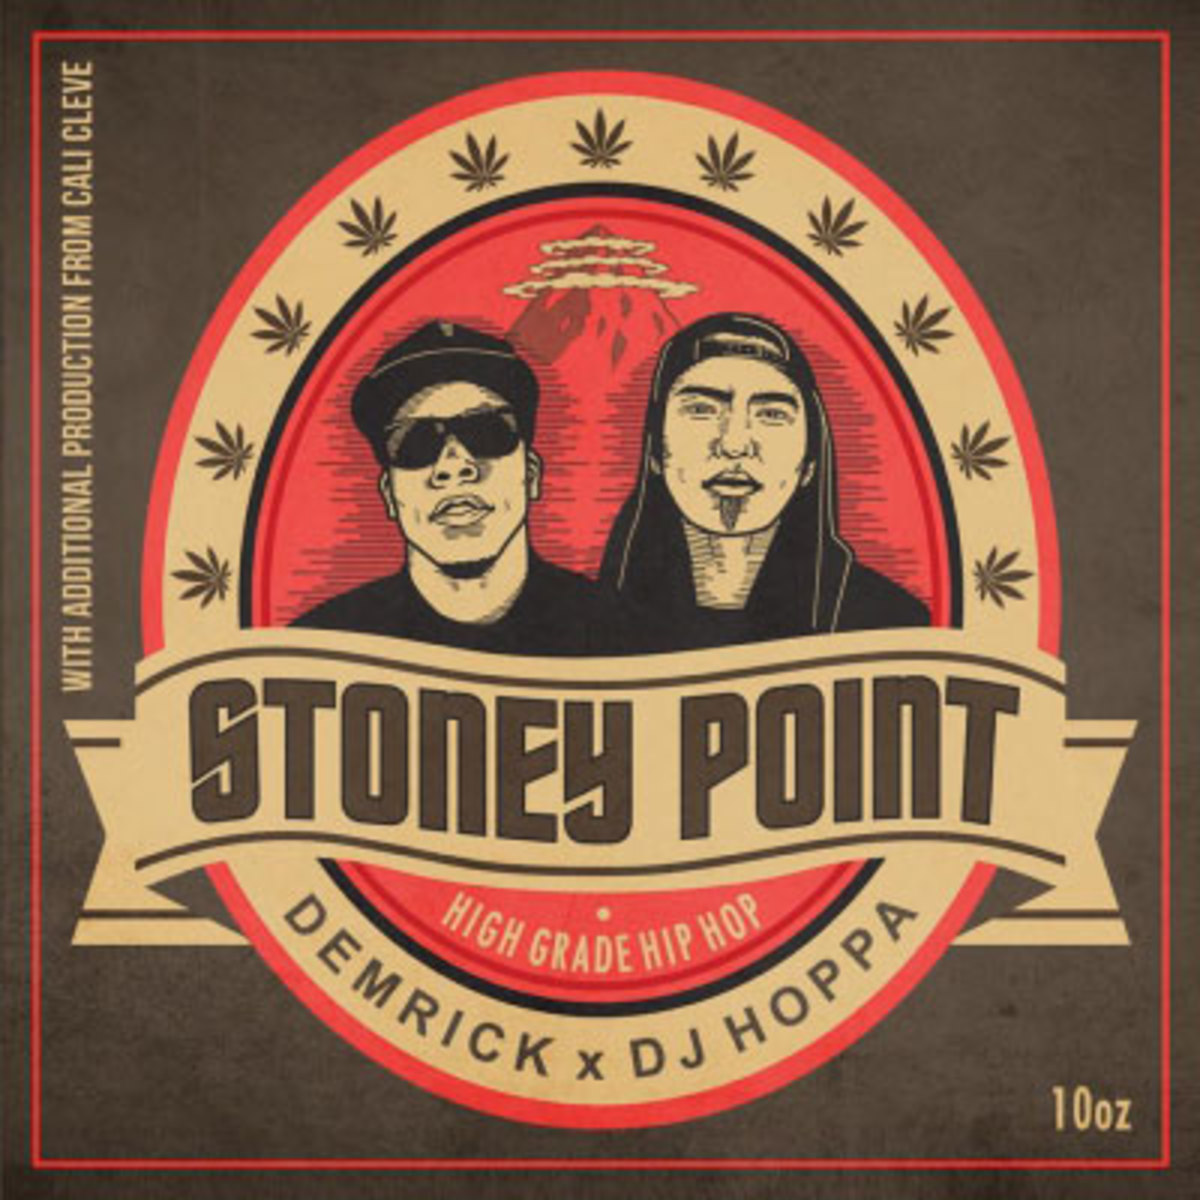 demrick-dj-hoppa-stoney-point.jpg